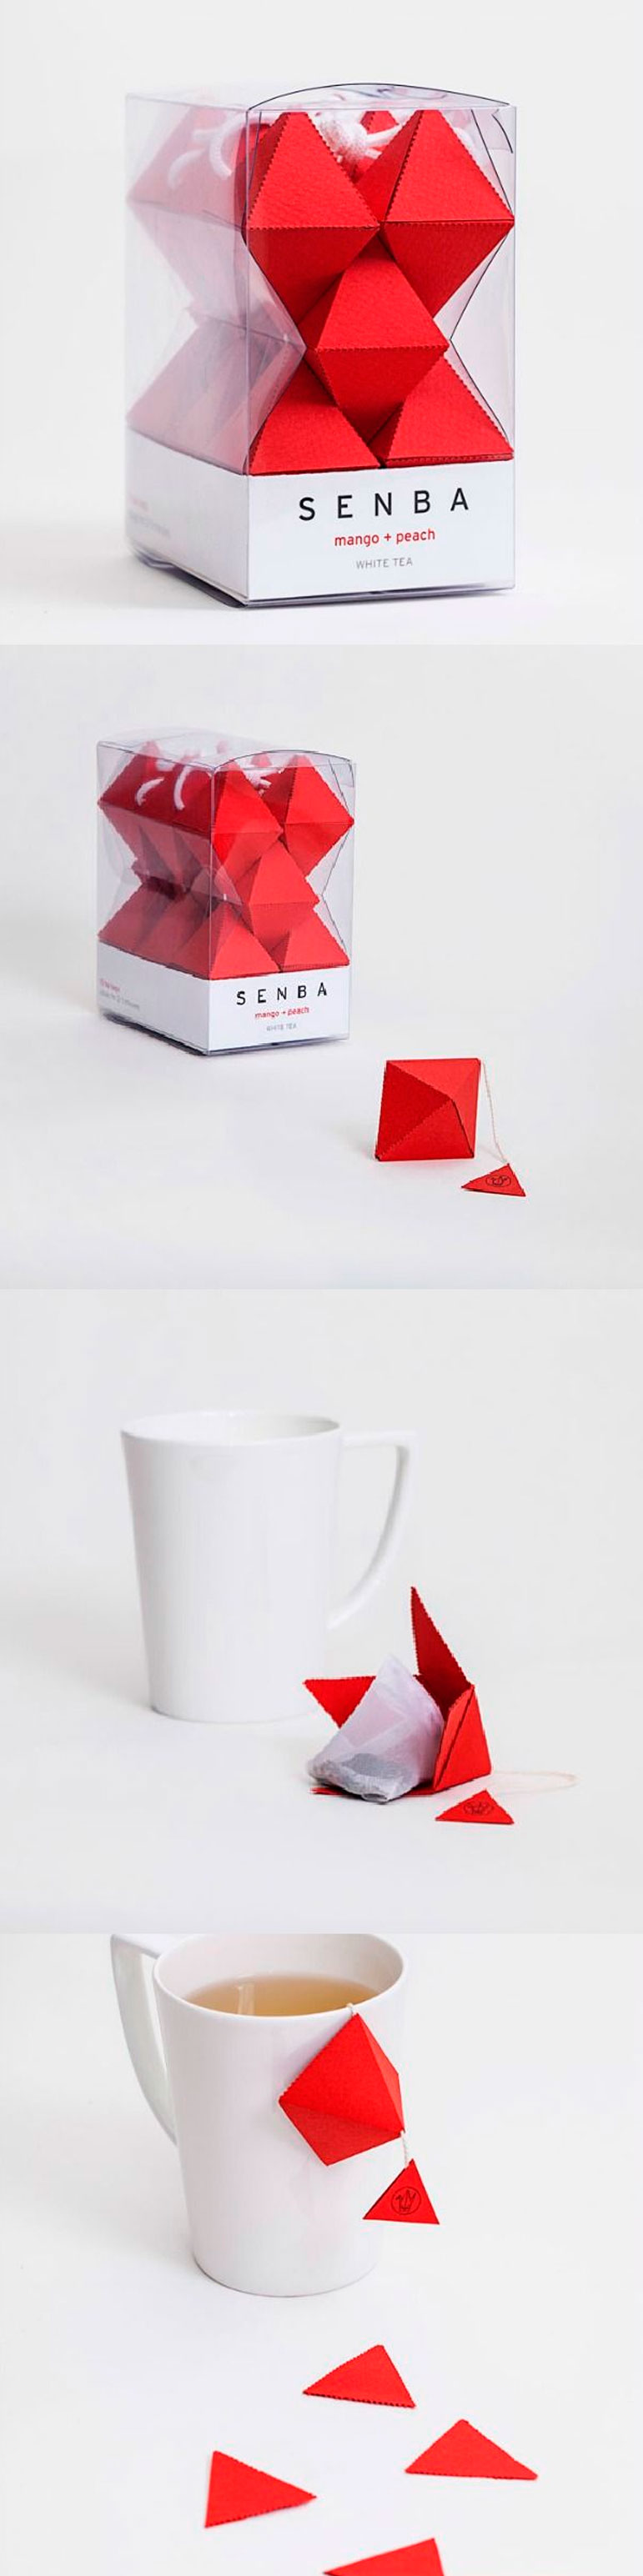 Diseño de Packaging